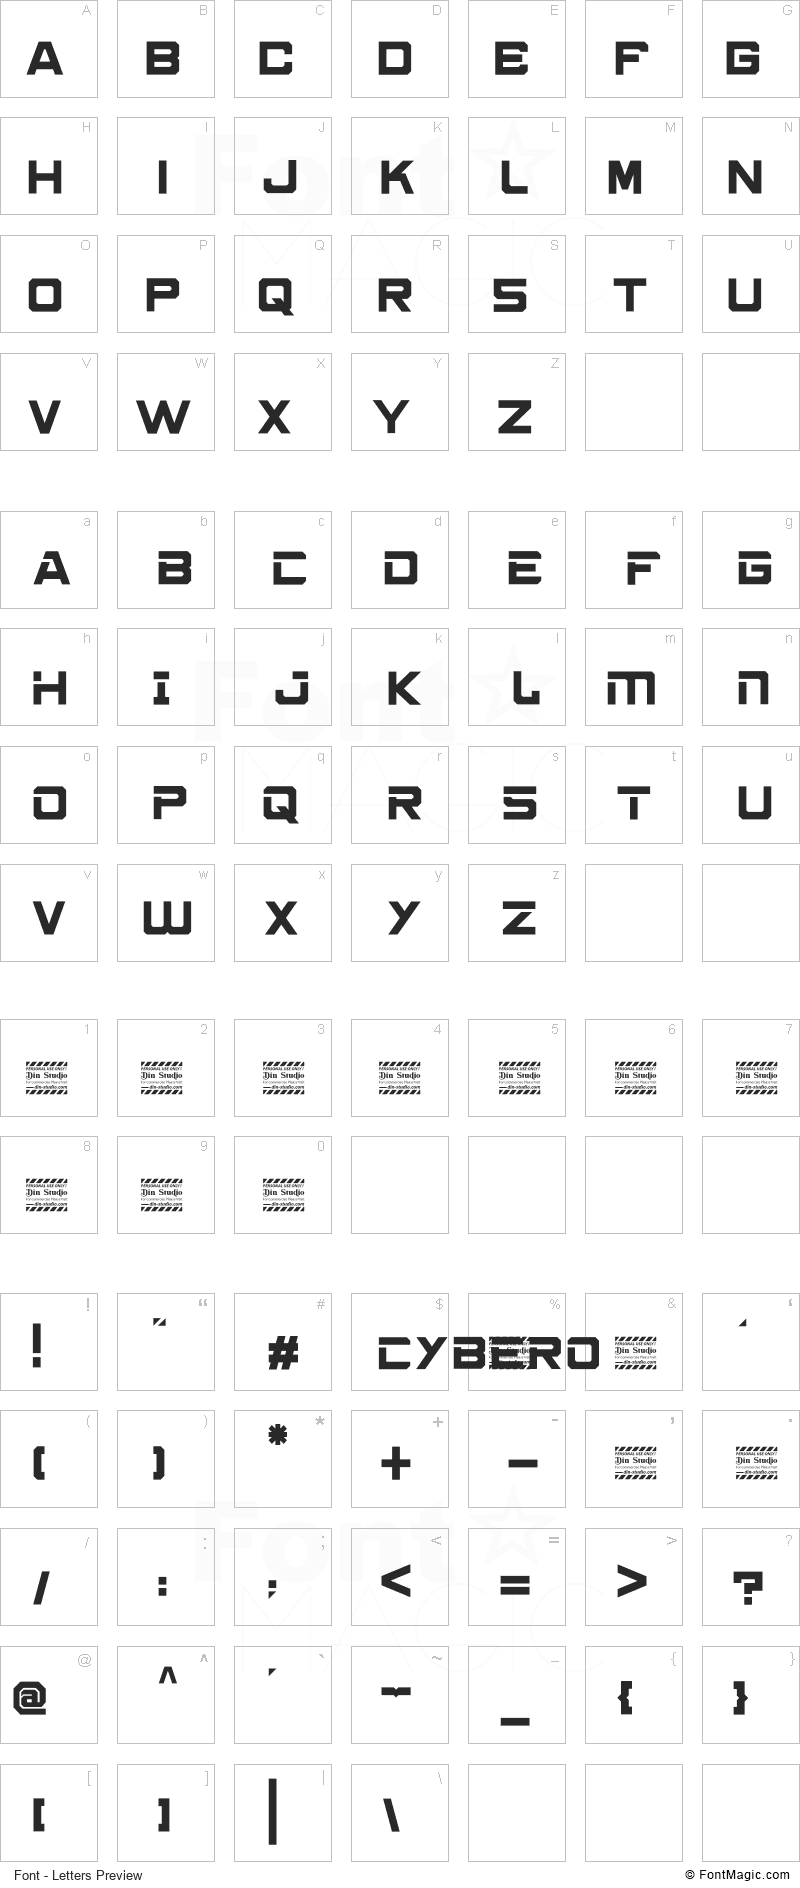 Cybero Font - All Latters Preview Chart